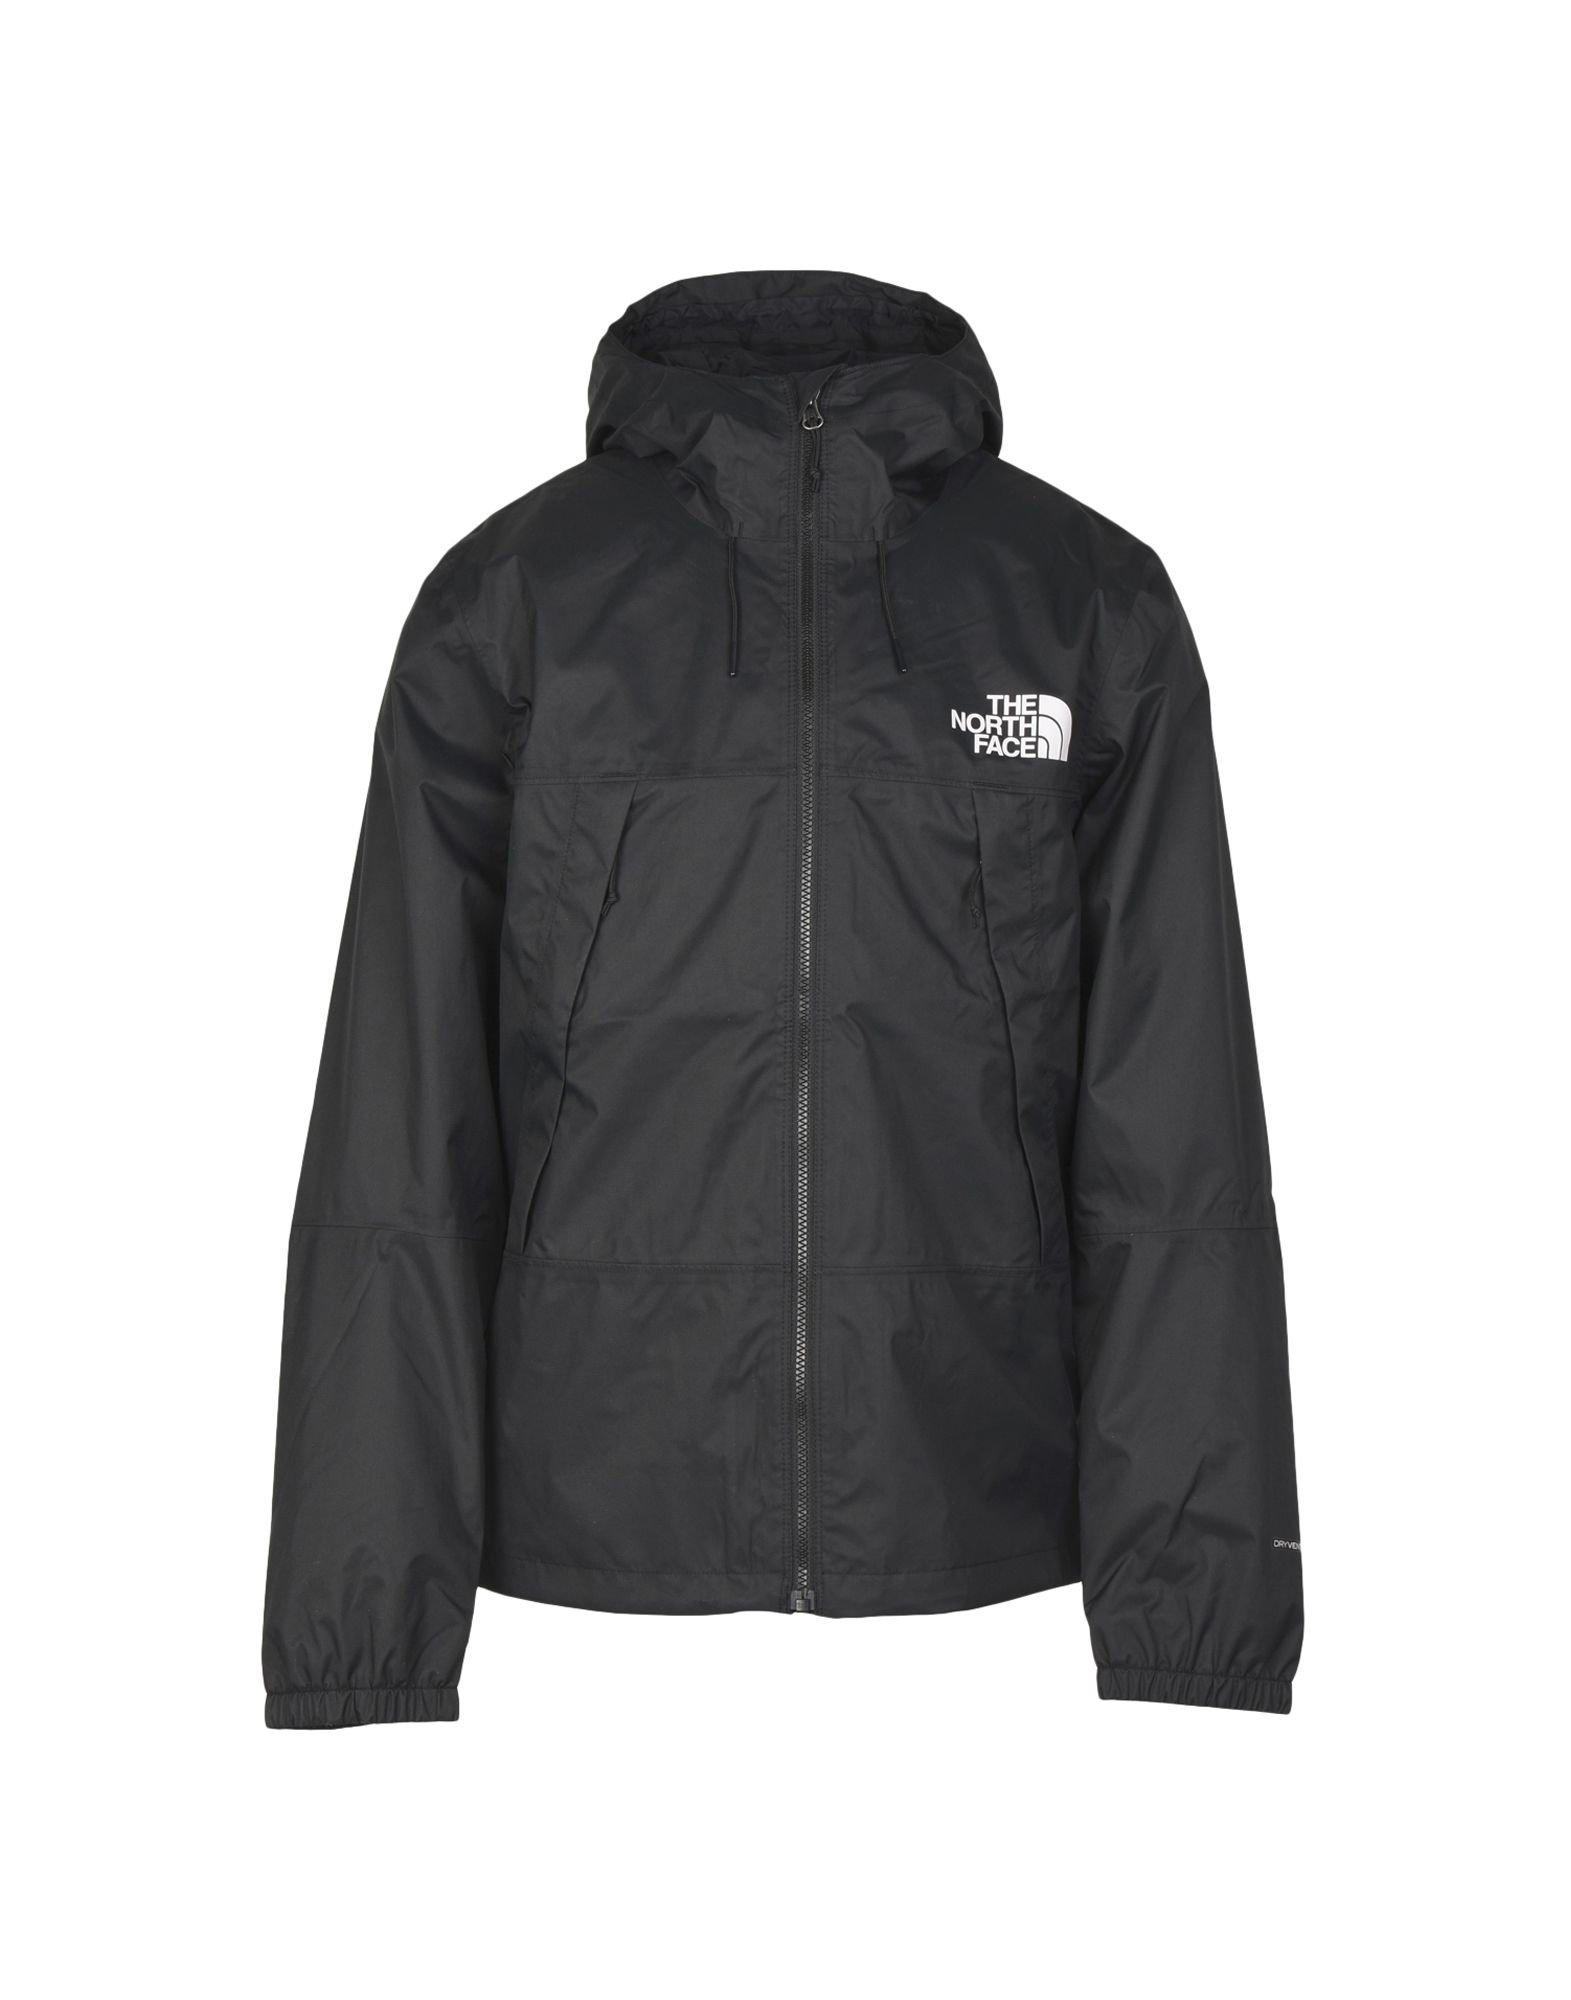 Giubbotto The North Face M  1990 Mountain Q Jacket Dryvent - Uomo - Acquista online su